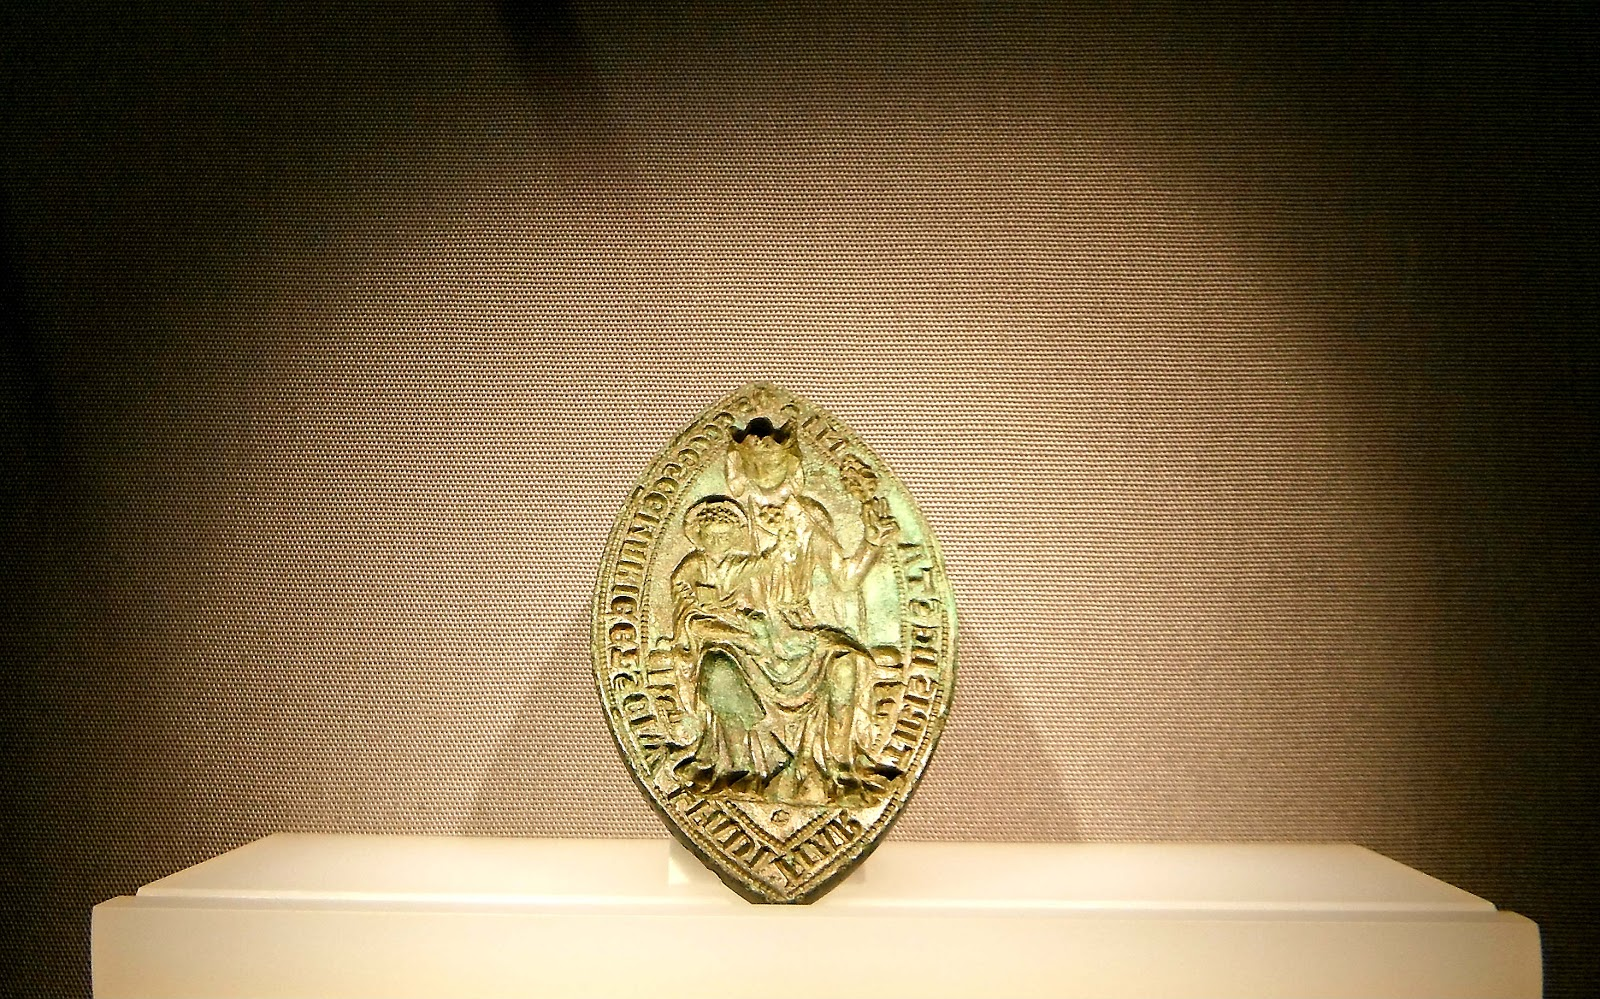 The medieval seal of Stone Priory